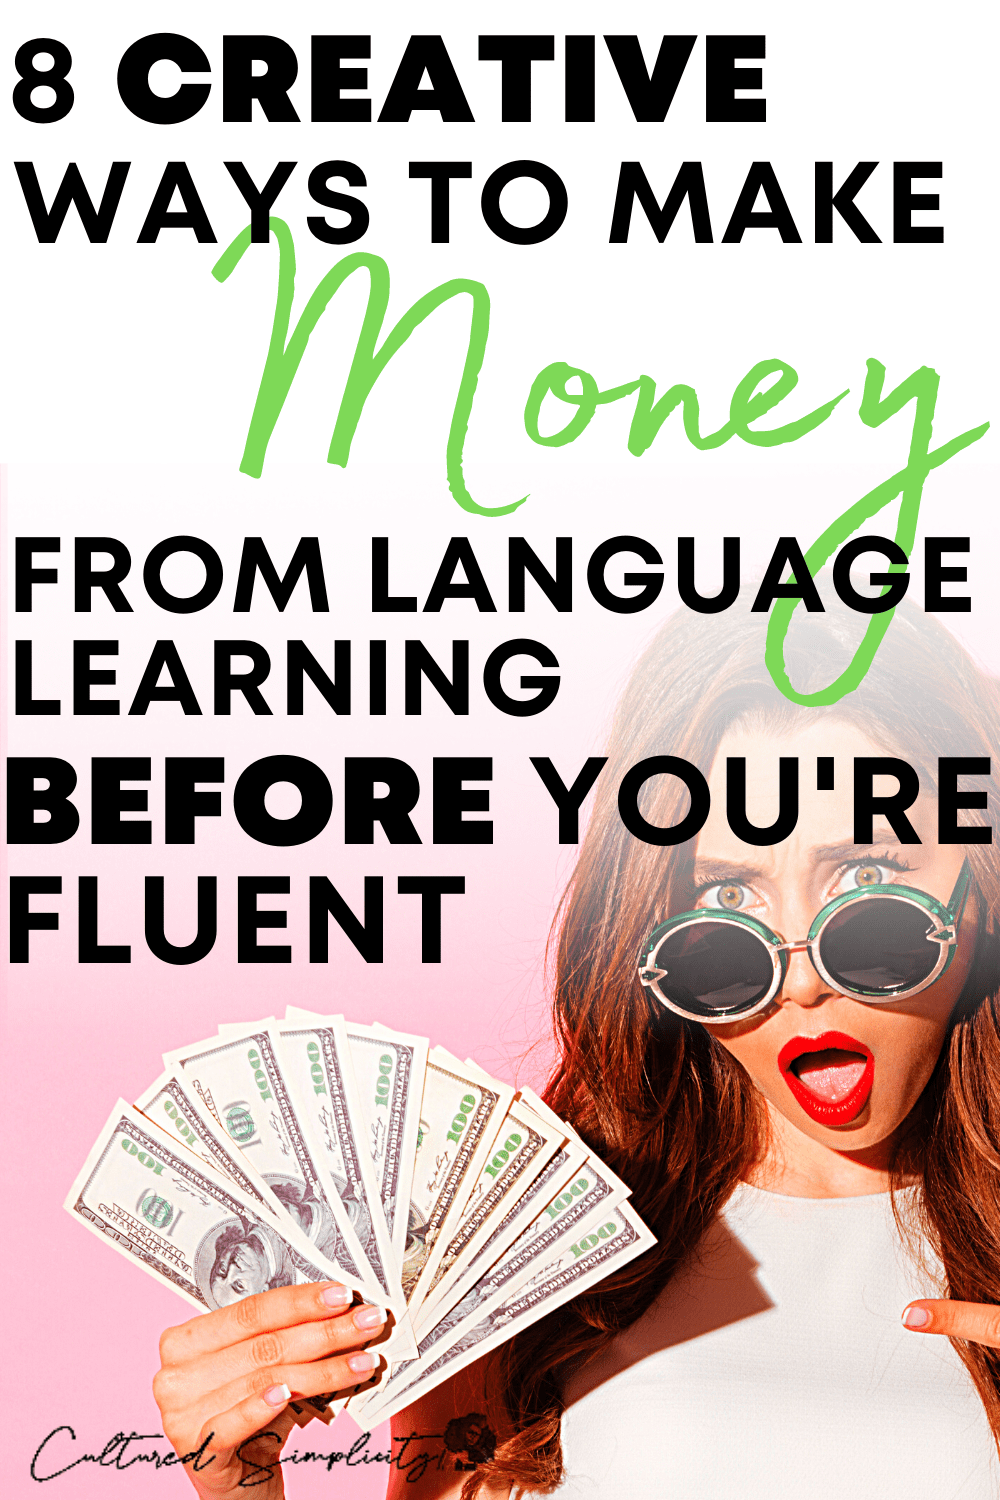 8 creative ways to make money from language learning BEFORE fluency